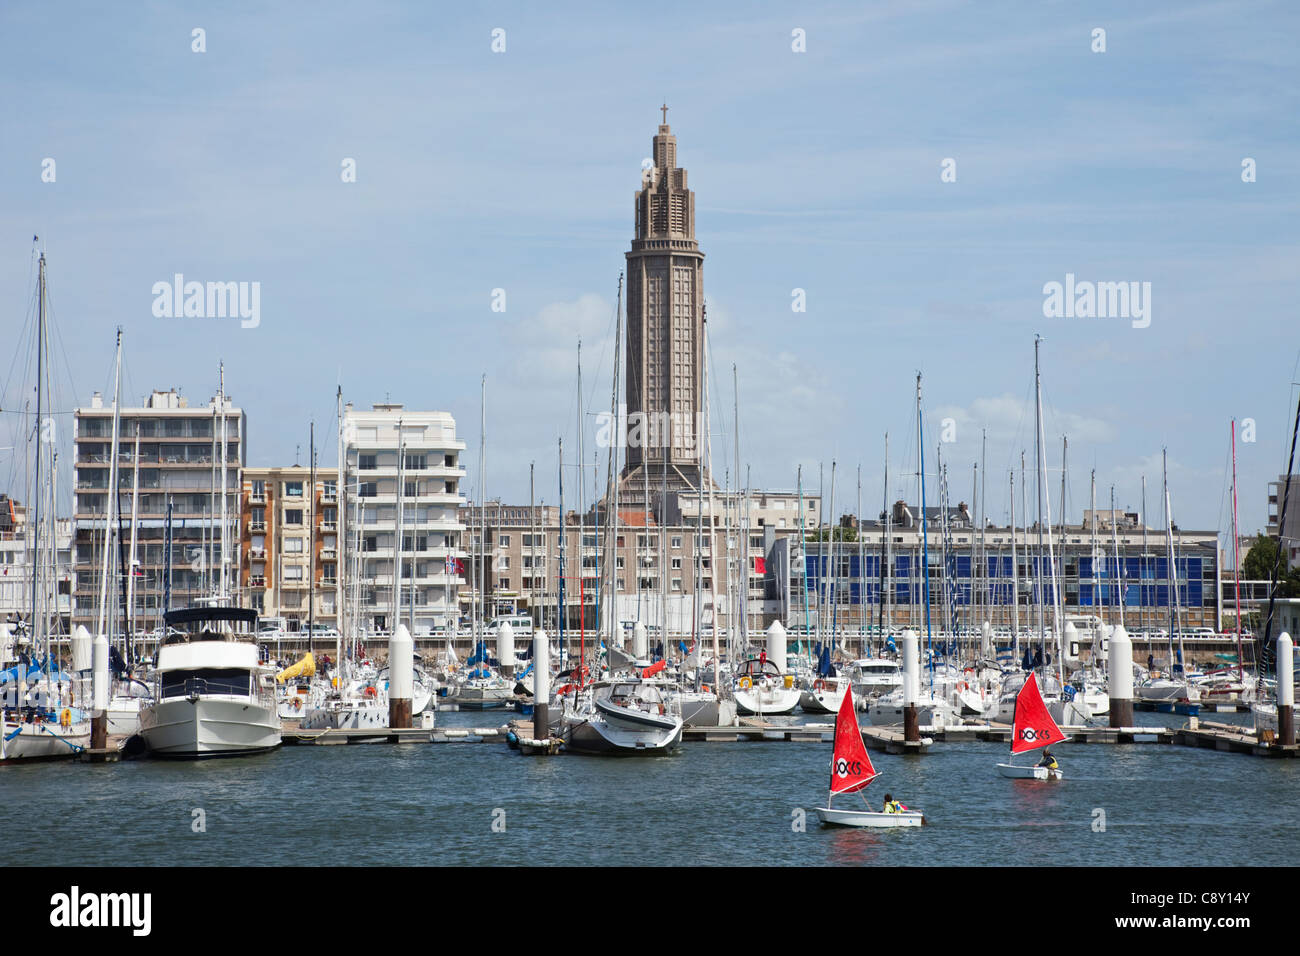 france normandy le havre yacht marina and city skyline stock photo royalty free image. Black Bedroom Furniture Sets. Home Design Ideas